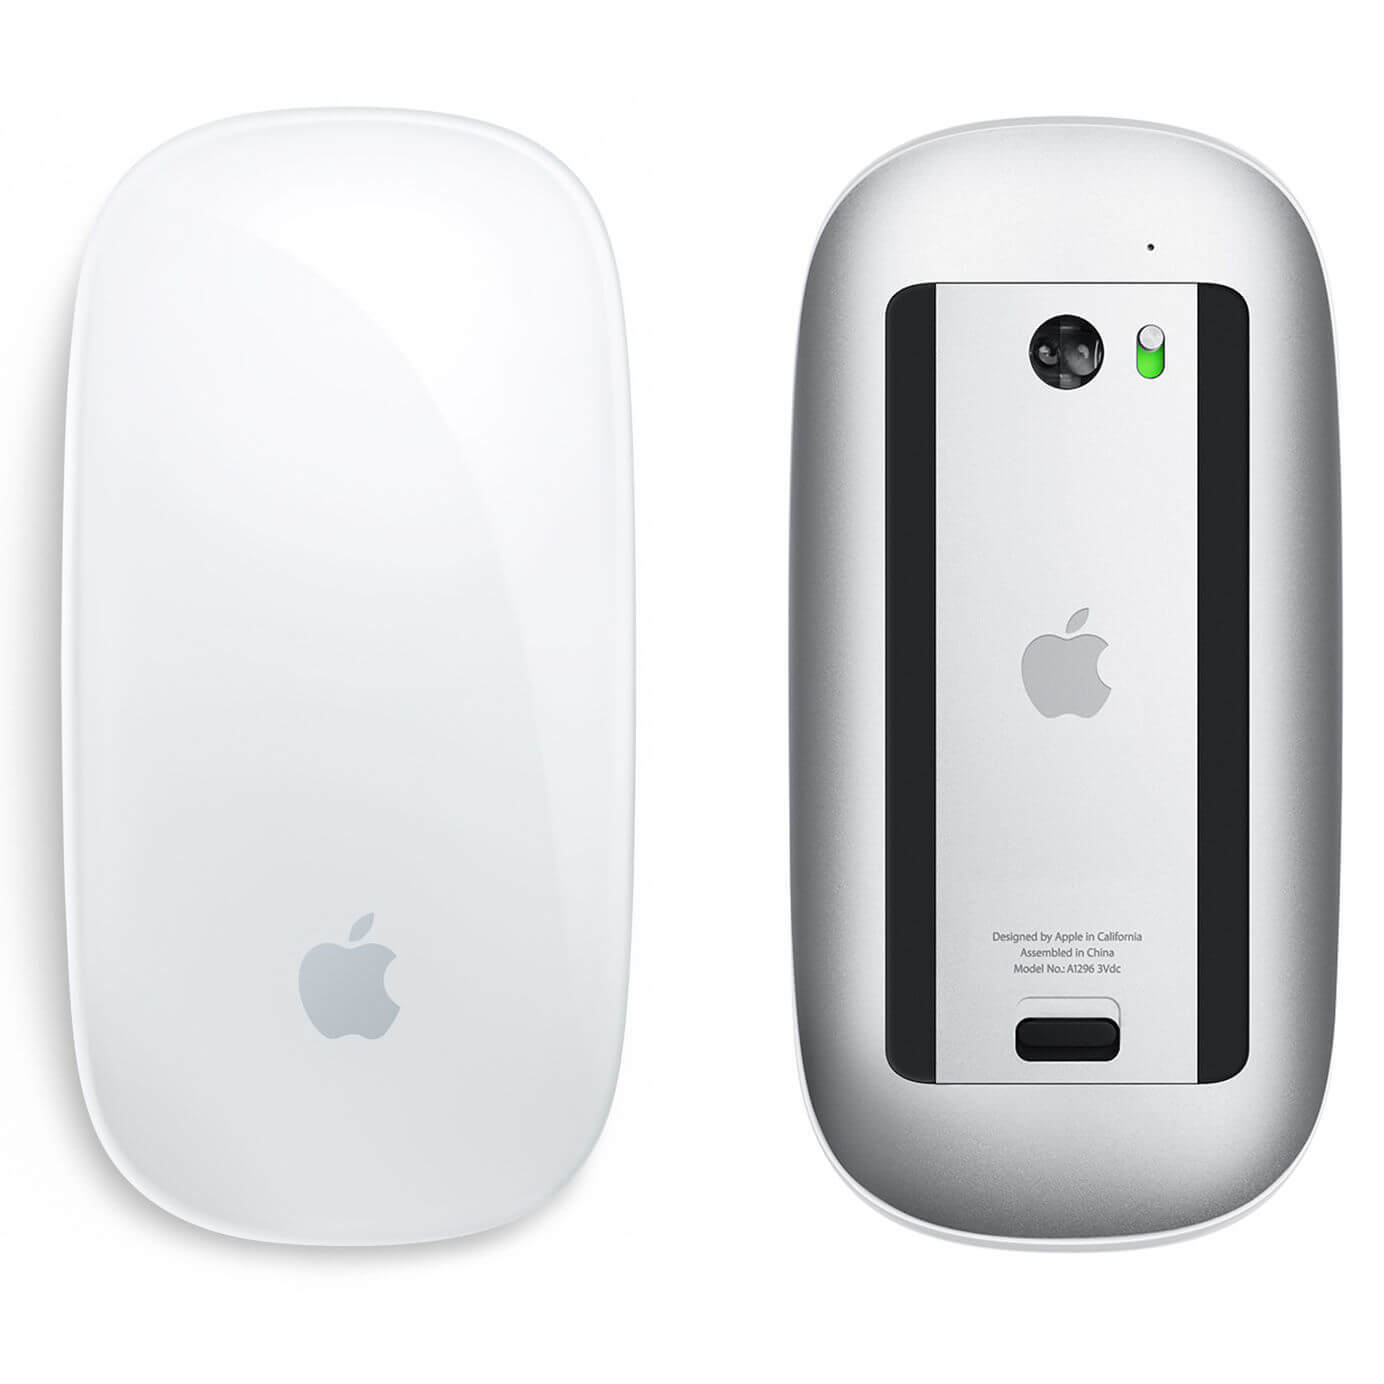 第一代 Magic Mouse